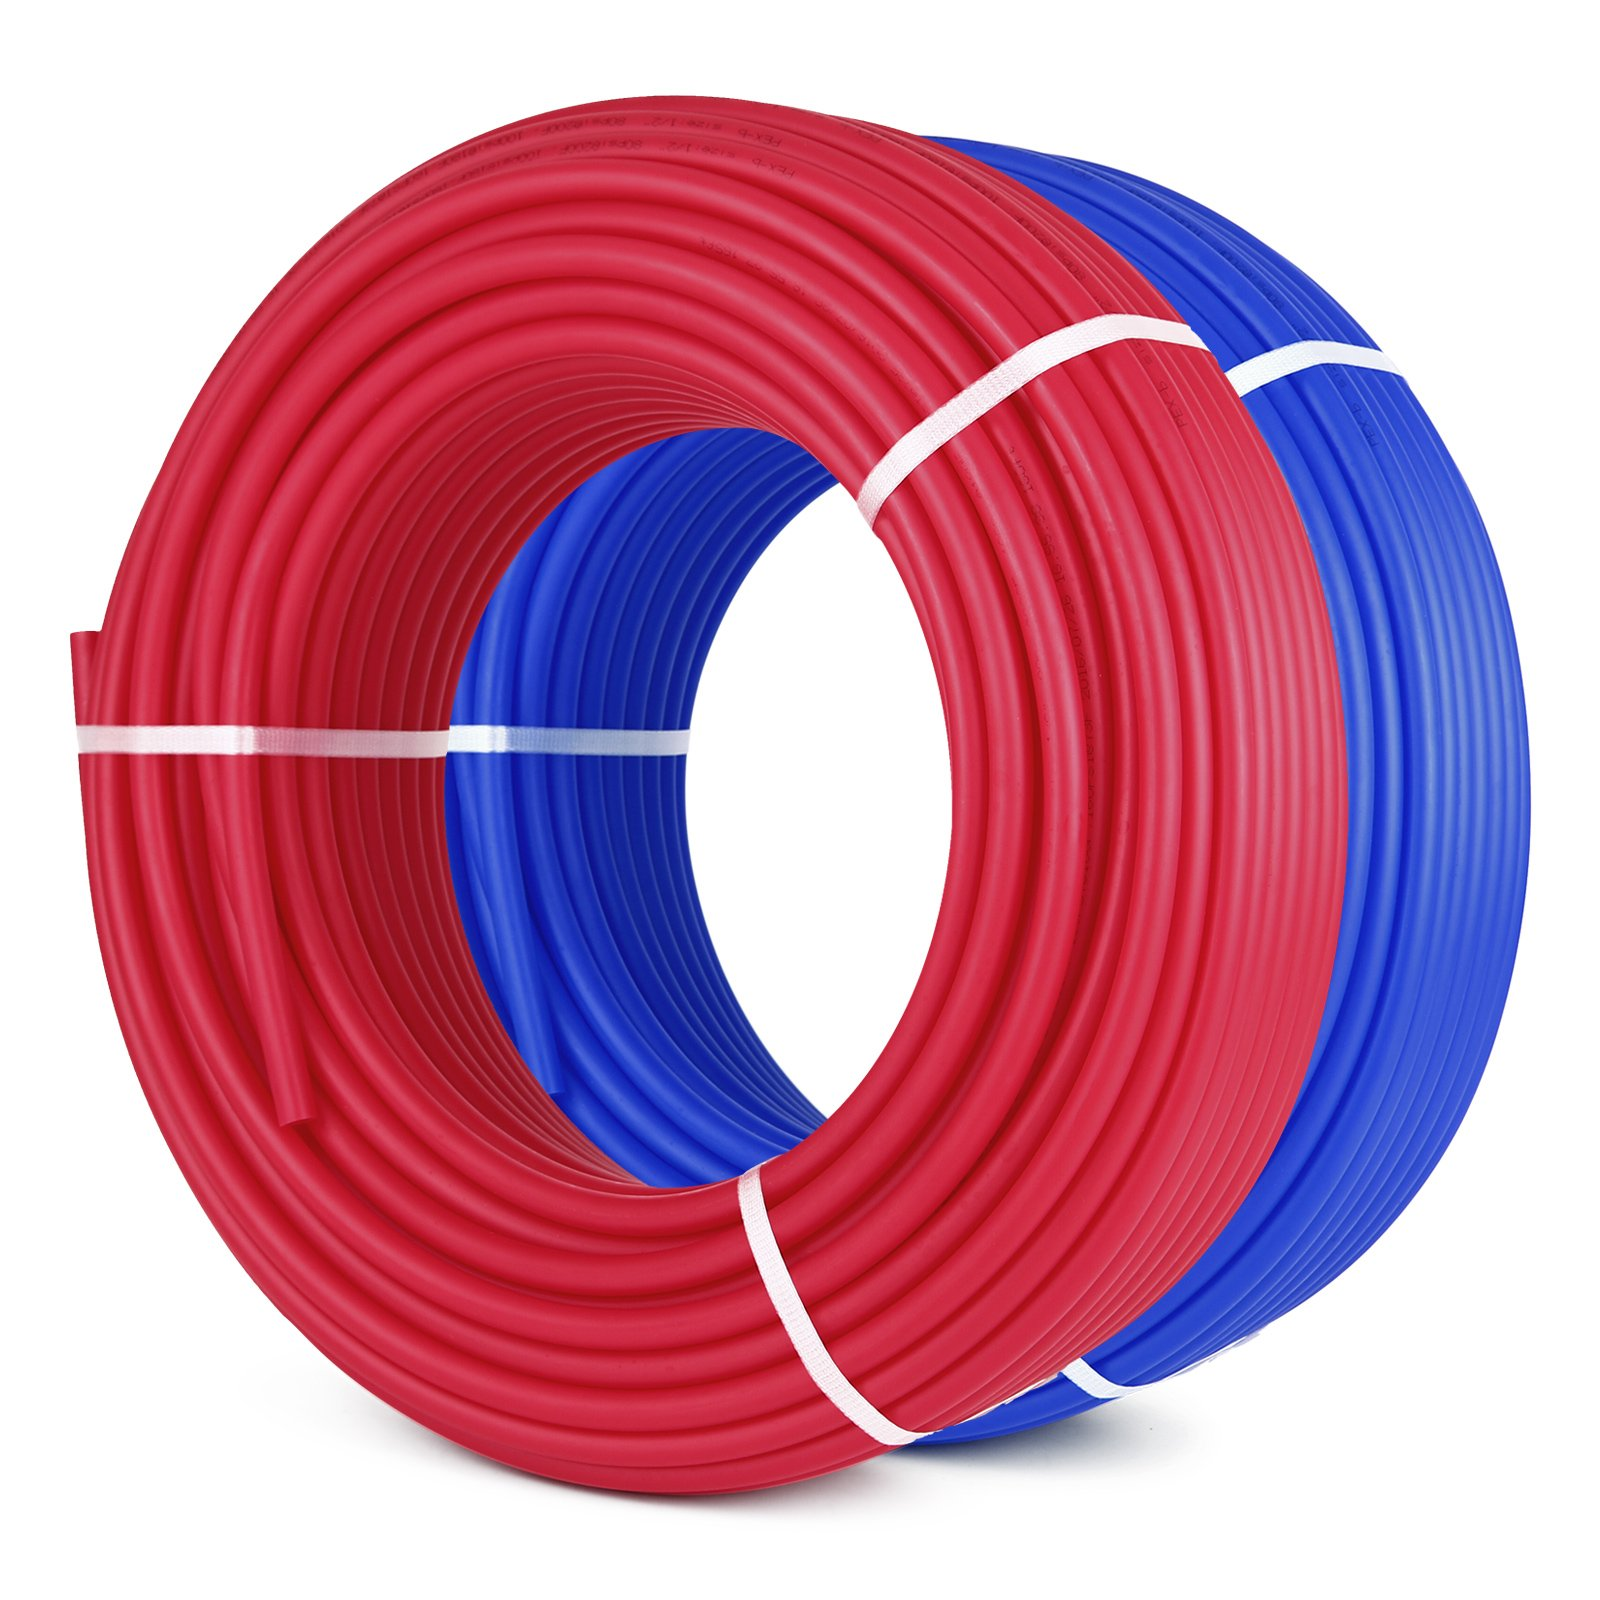 VEVOR PEX Tubing 1/2 Inch 300ft 2 Rolls Non Oxygen Barrier PEX Tubing Red and Blue Radiant Heat Pex Piping Kit for Residential and Commercial Potable Water Applications by VEVOR